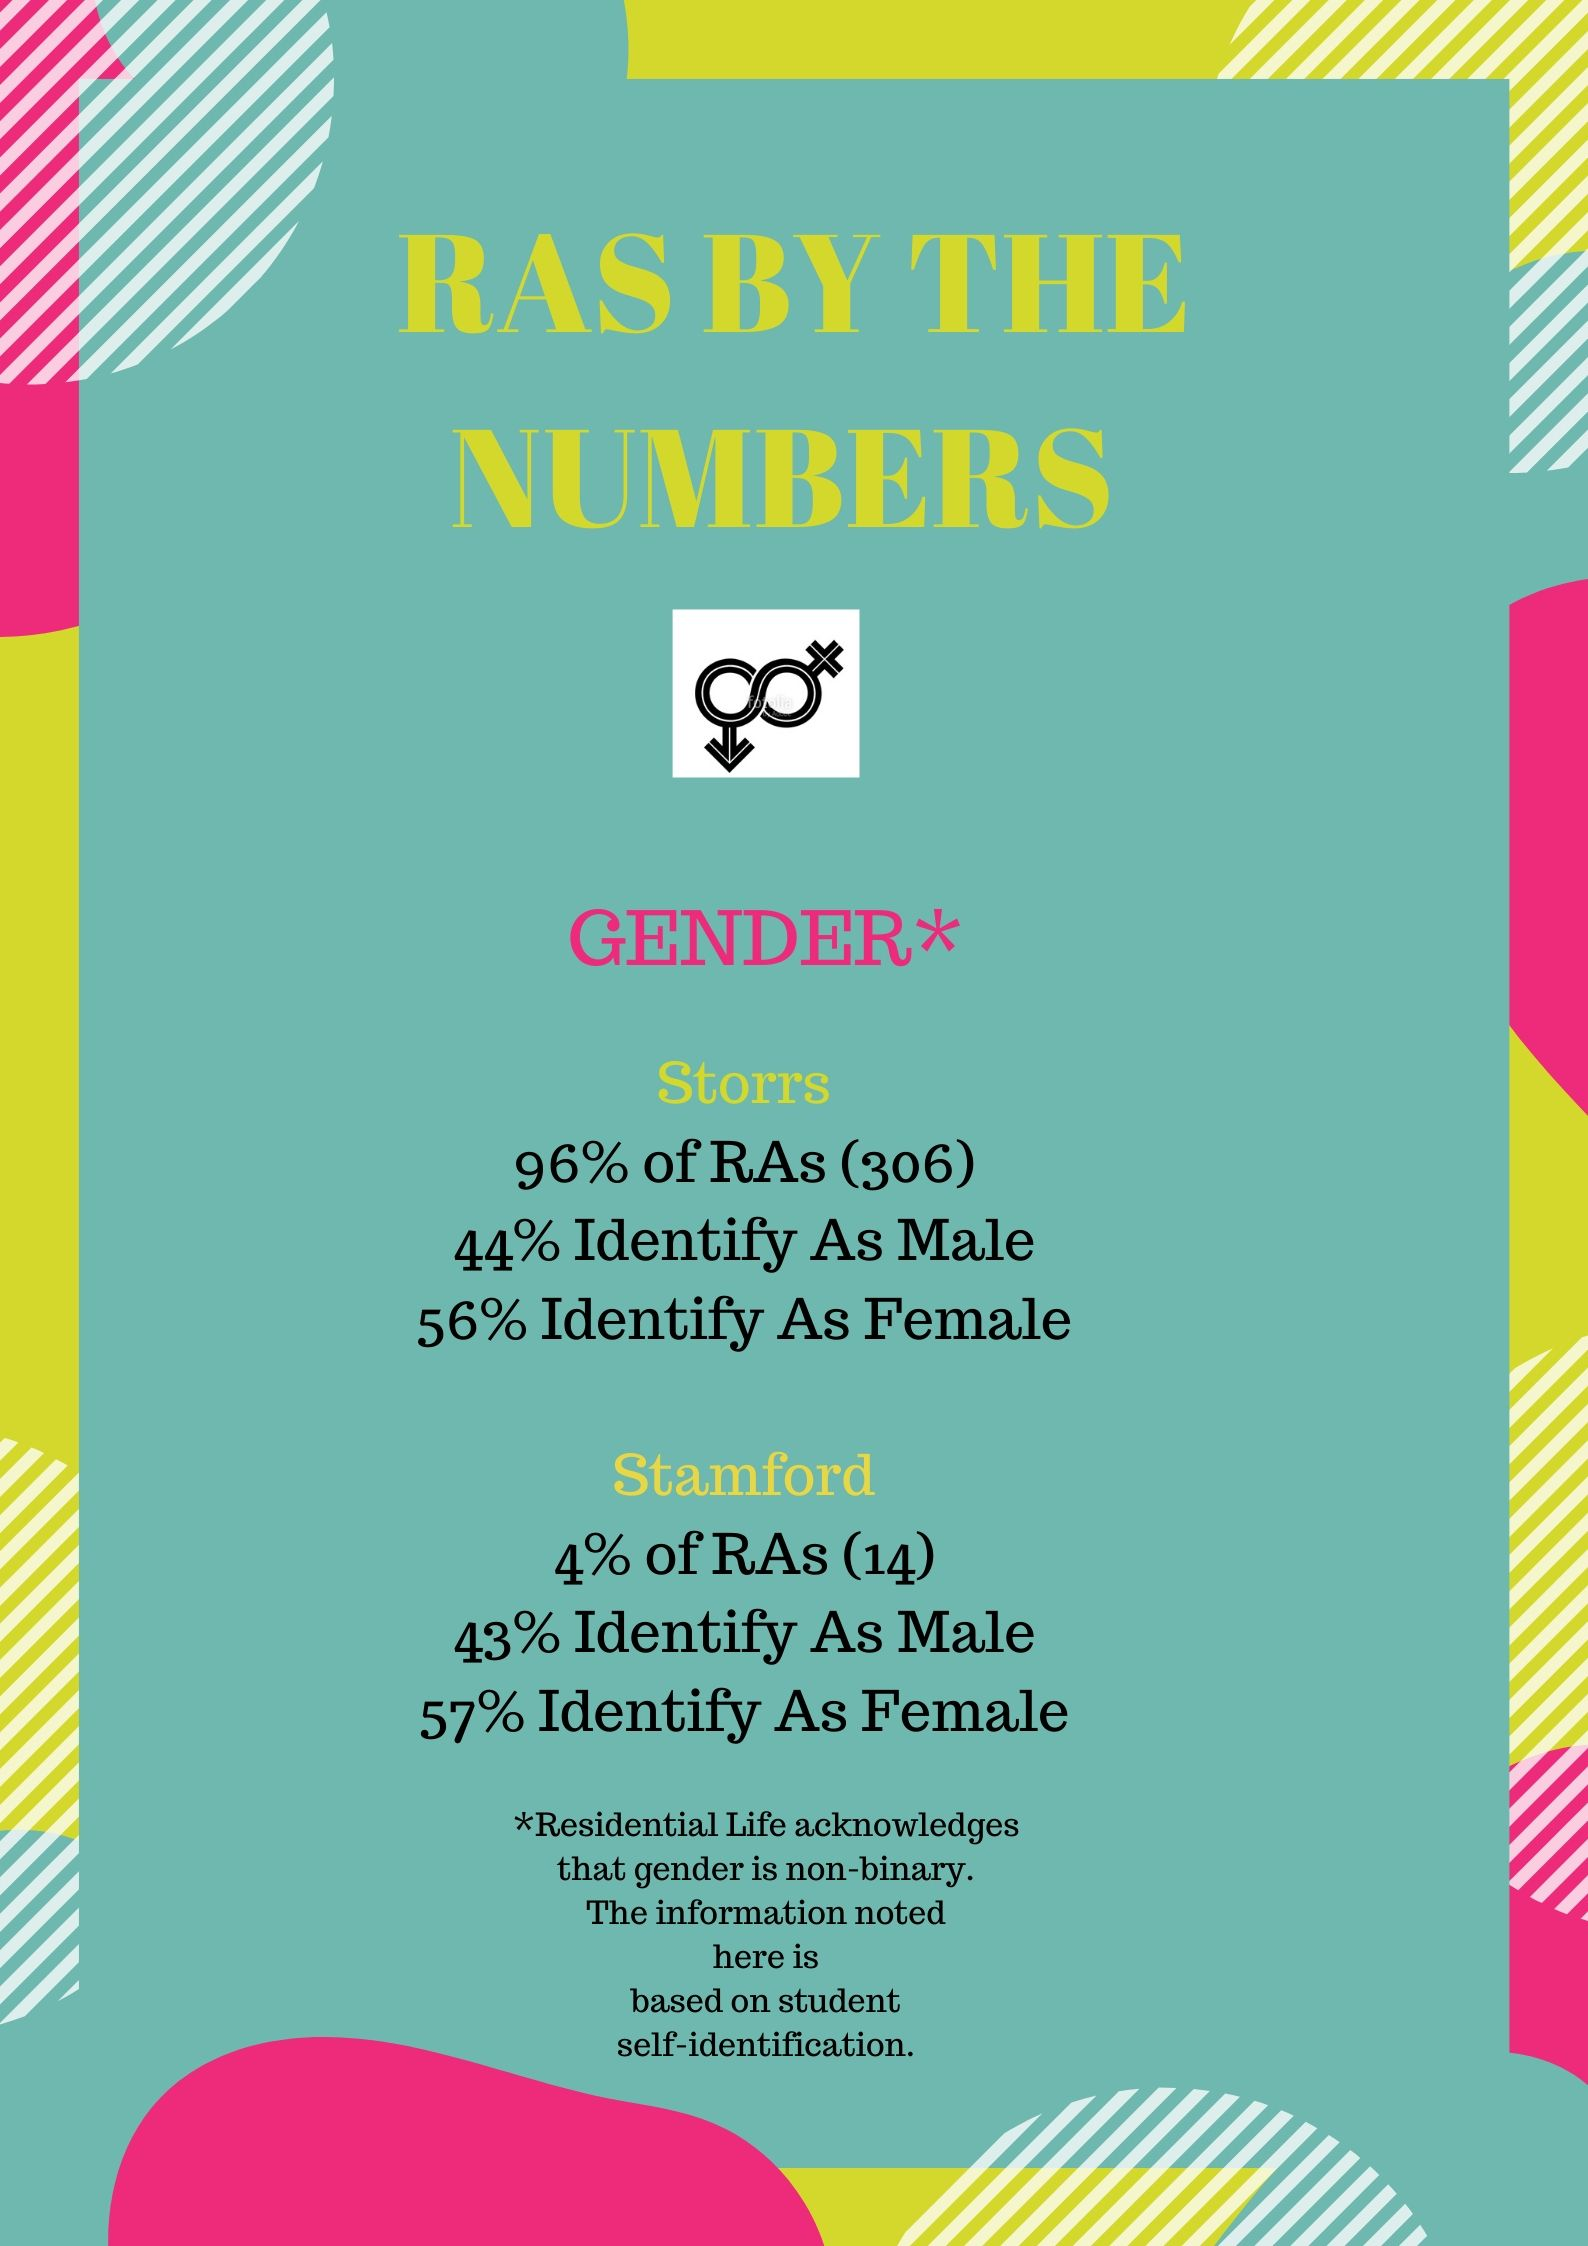 RAs by the numbers: Gender (Residential Life acknowledges that gender is non-binary. The information noted is based on student self-identification. Out of 96% of RAs at Storrs, 44% identify as male and 56% identify as female. Out of 4% of Stamford RAs, 43% identify as male and 57% identify as female.